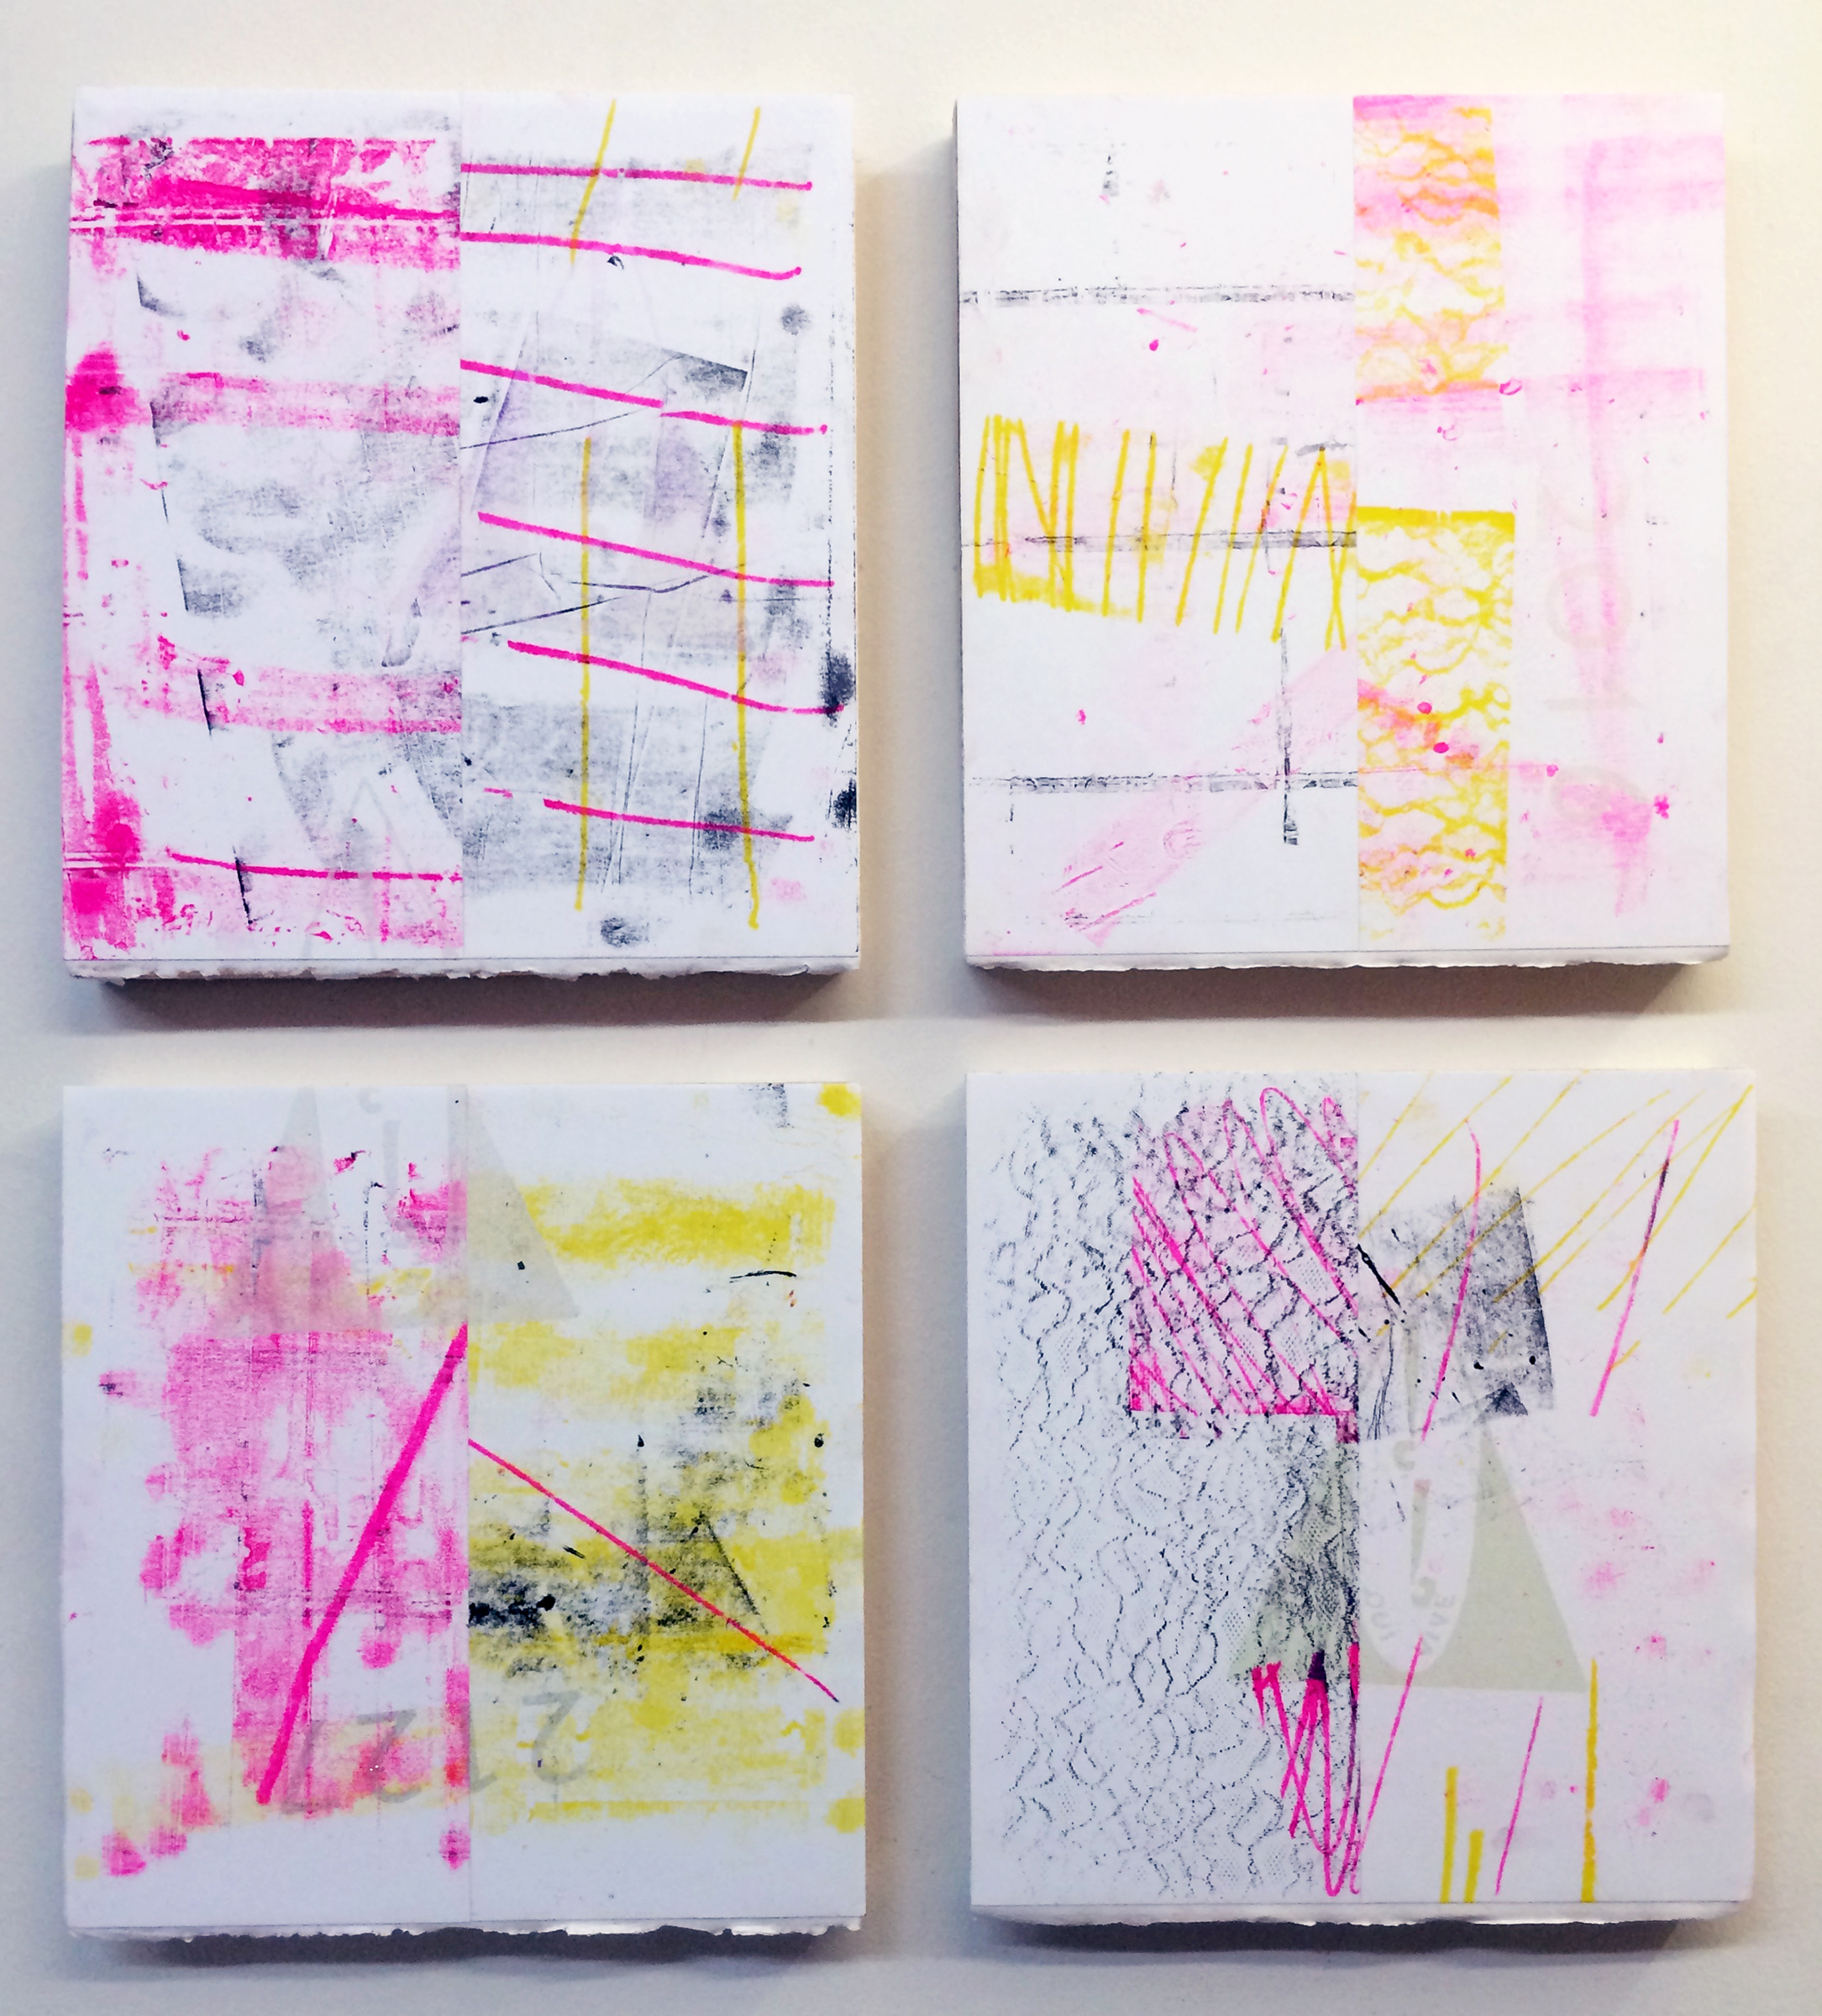 """AMANDA CURRERI   Eff (Time-Travel) 4 , 2016, monoprint, derigraph, glitter and dirt on paper mounted to panel, 23.5"""" x 21.5"""", (11"""" x 10 each)"""